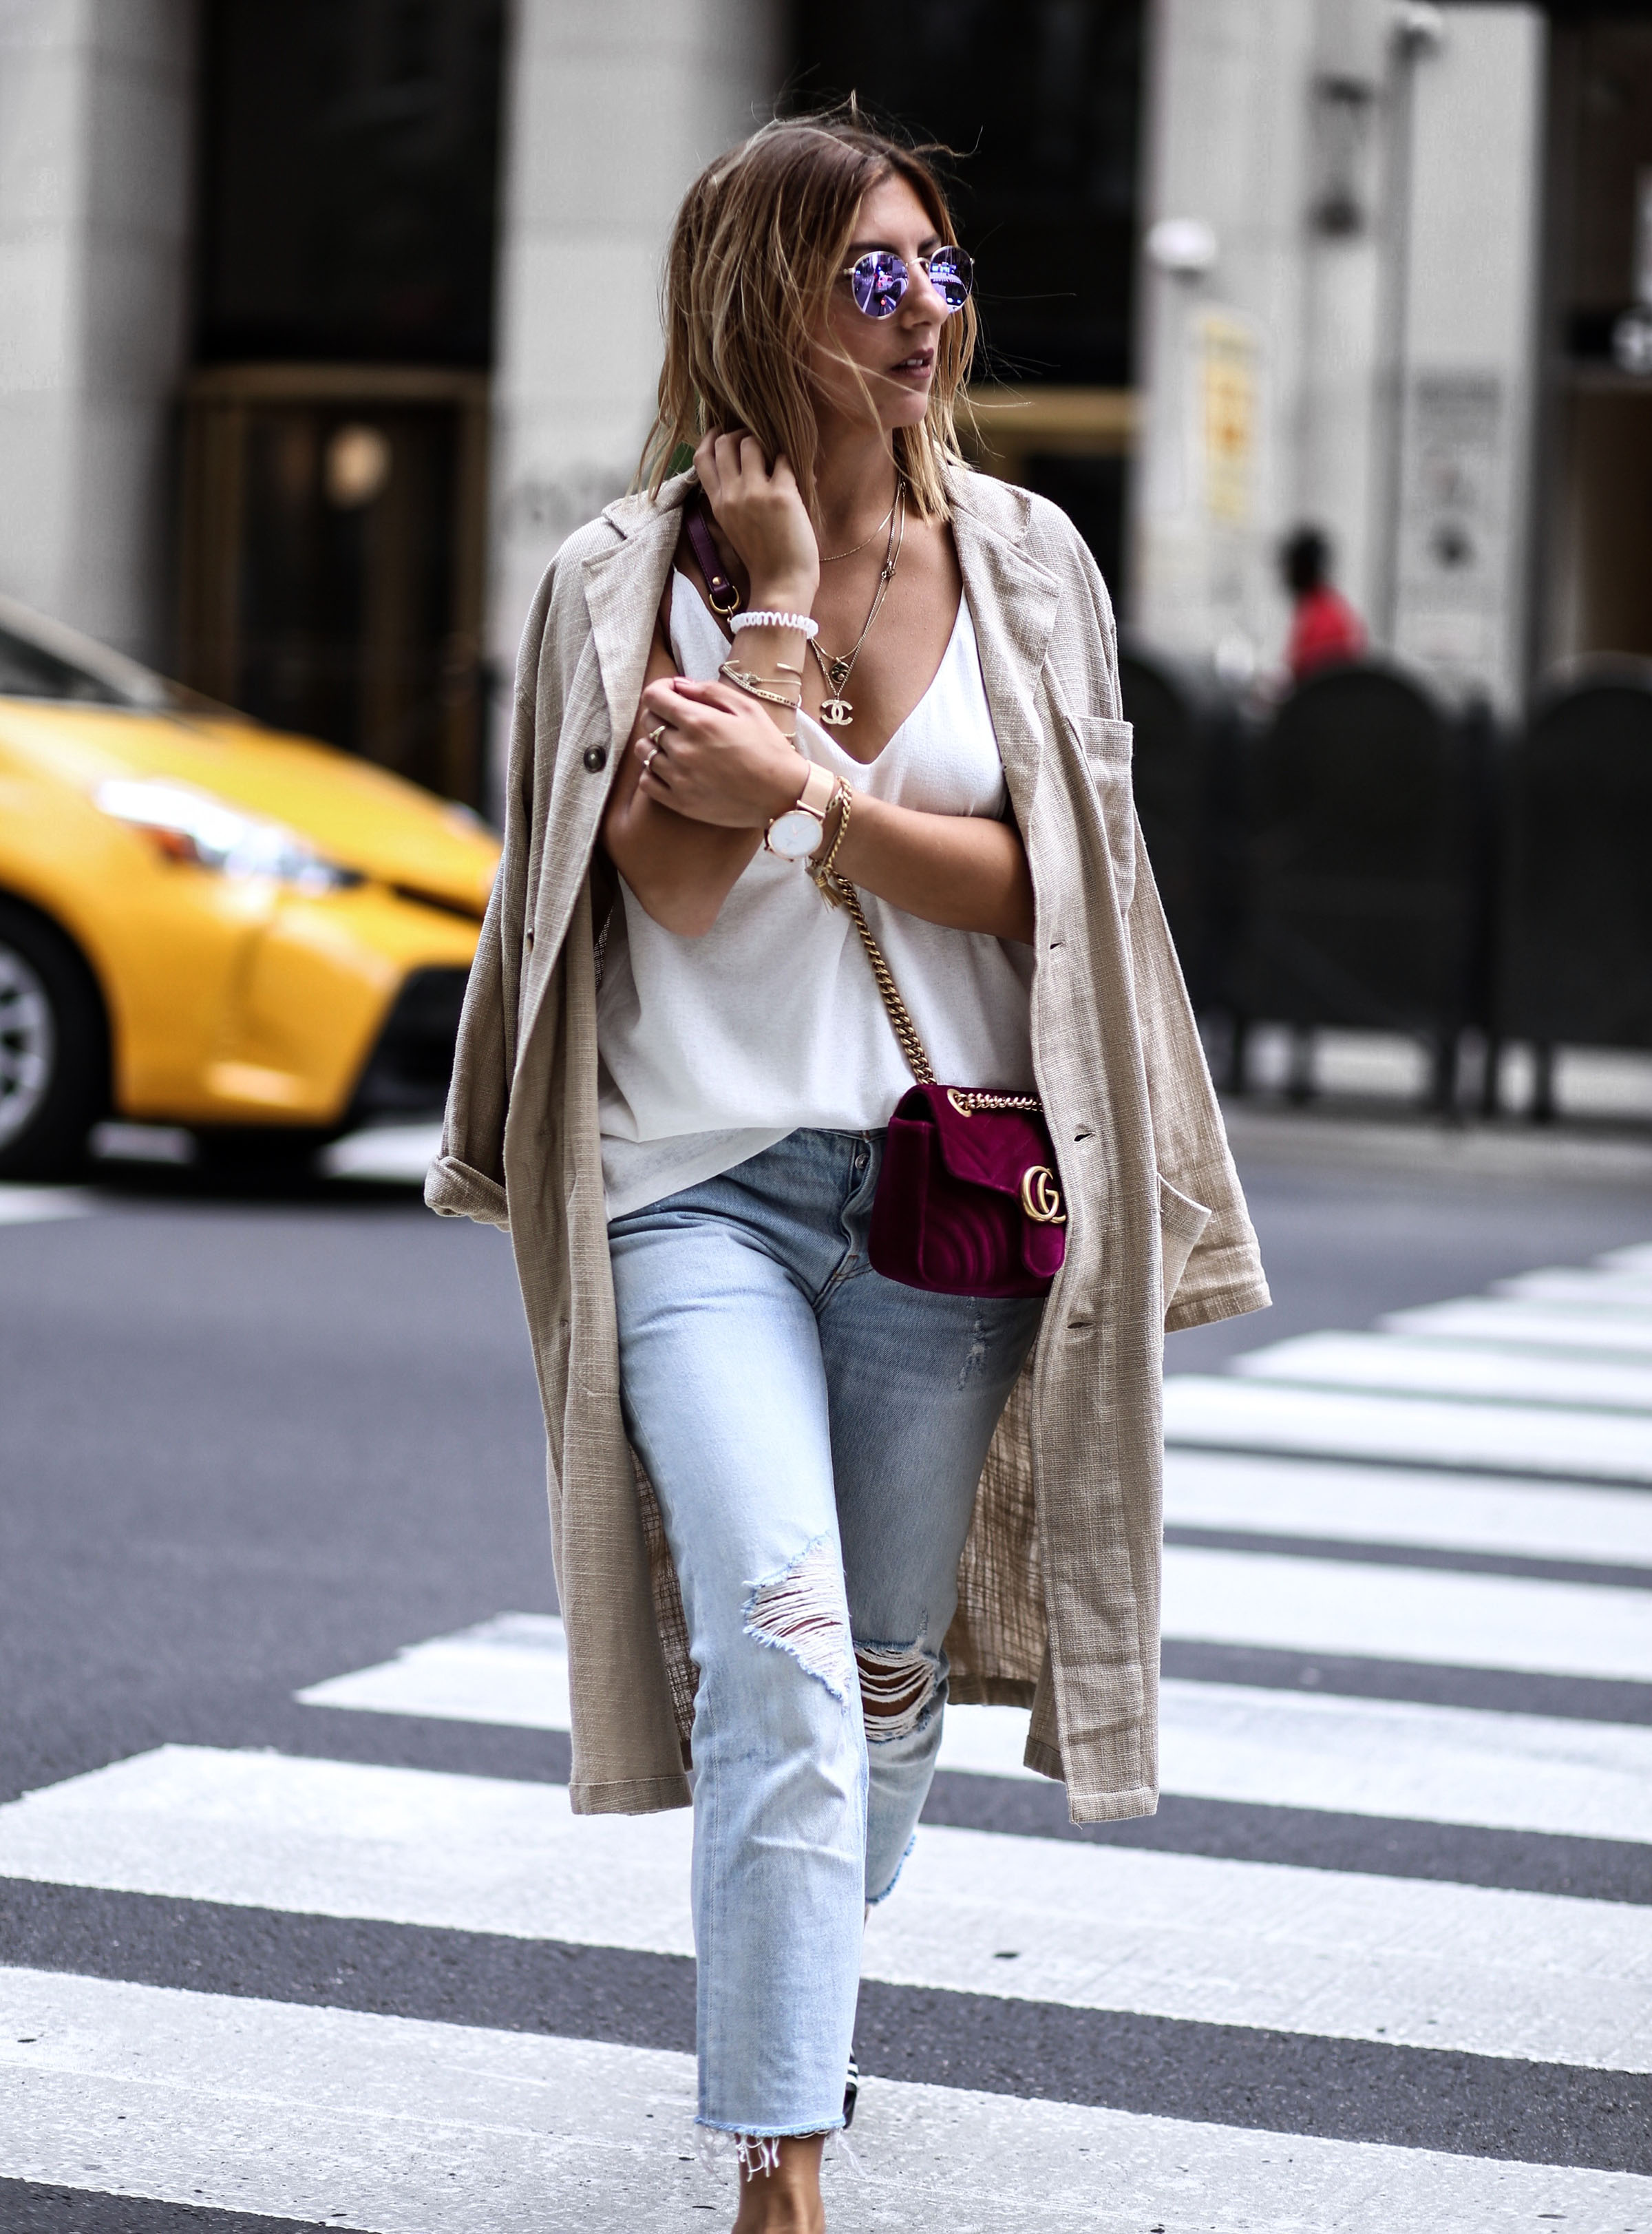 aylin_koenig_bloggerin_new_york_fashion_week